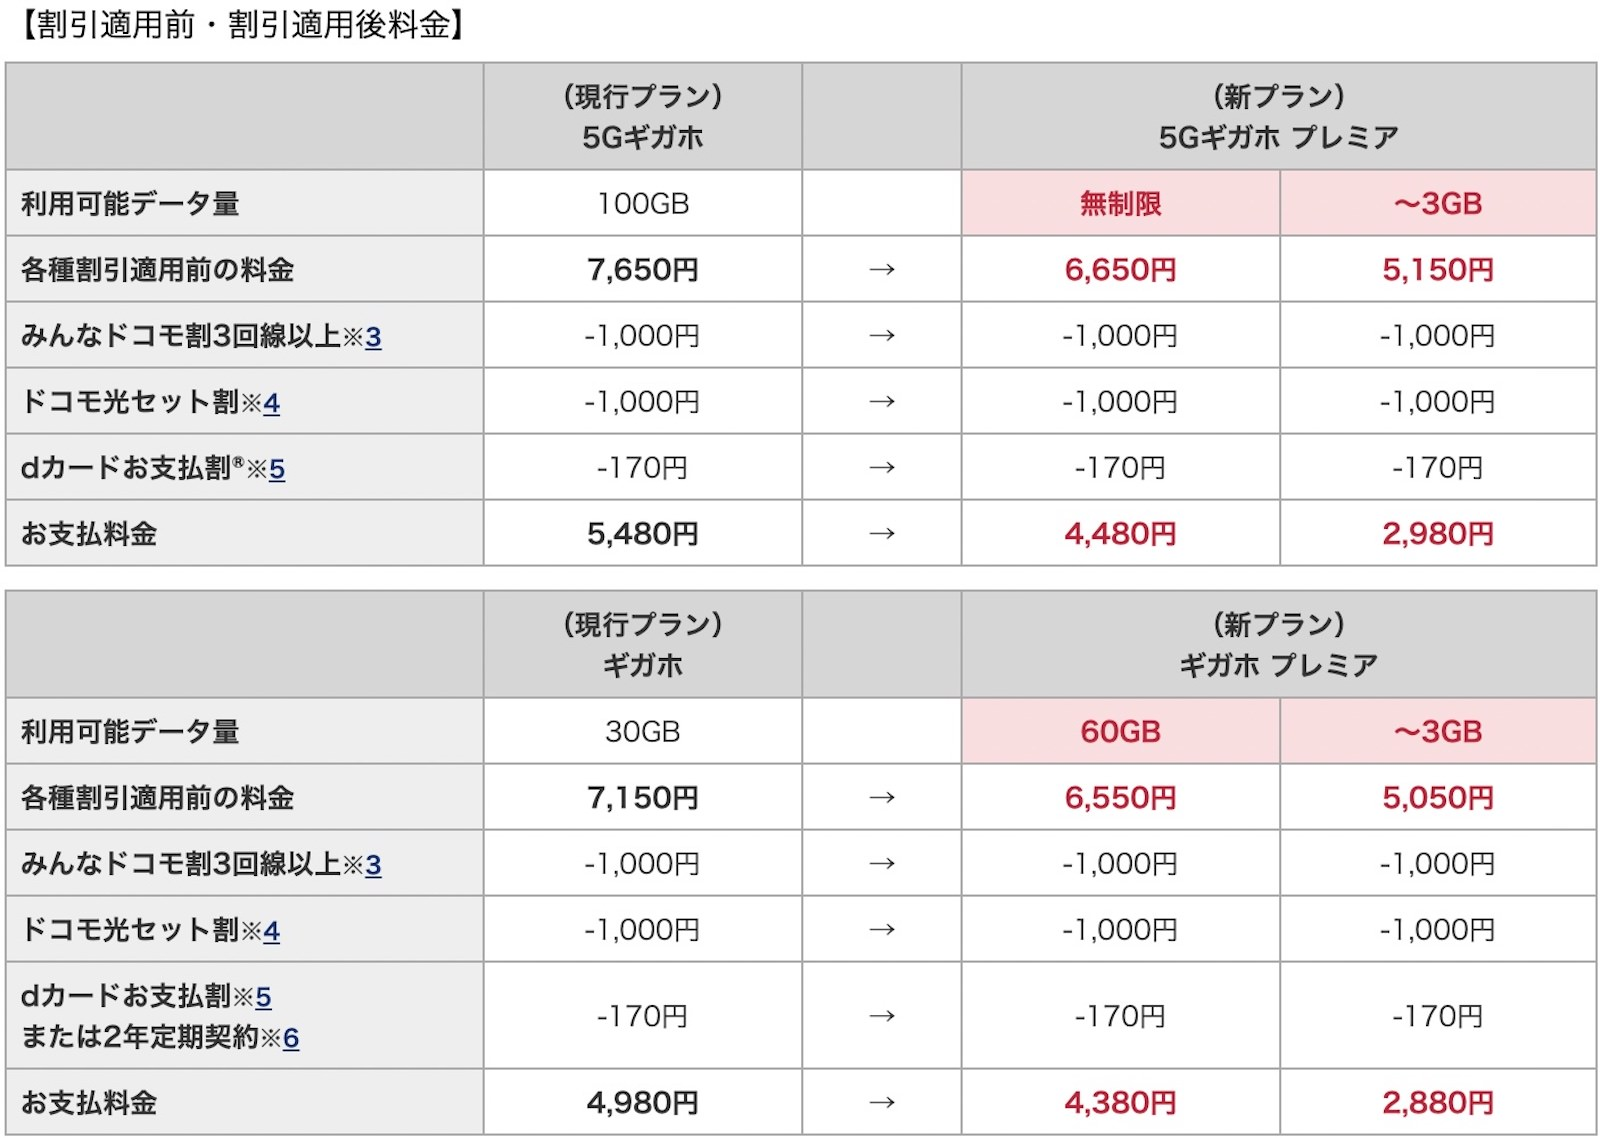 Docomo new pricing for 5g